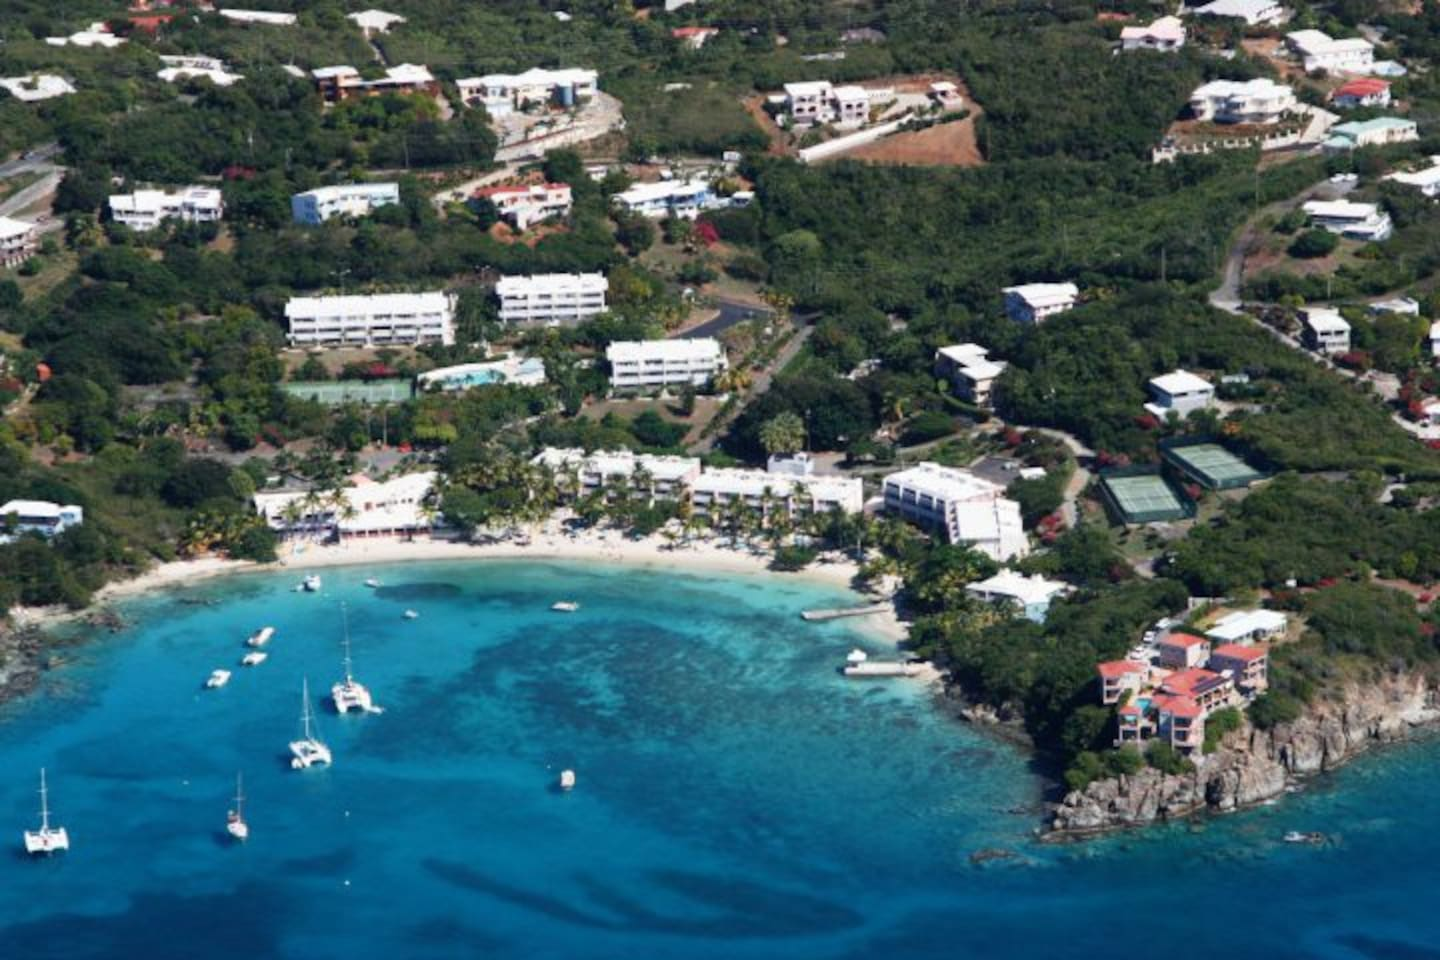 Our Place in St thomas is up to the left above Secret Harbour hotel